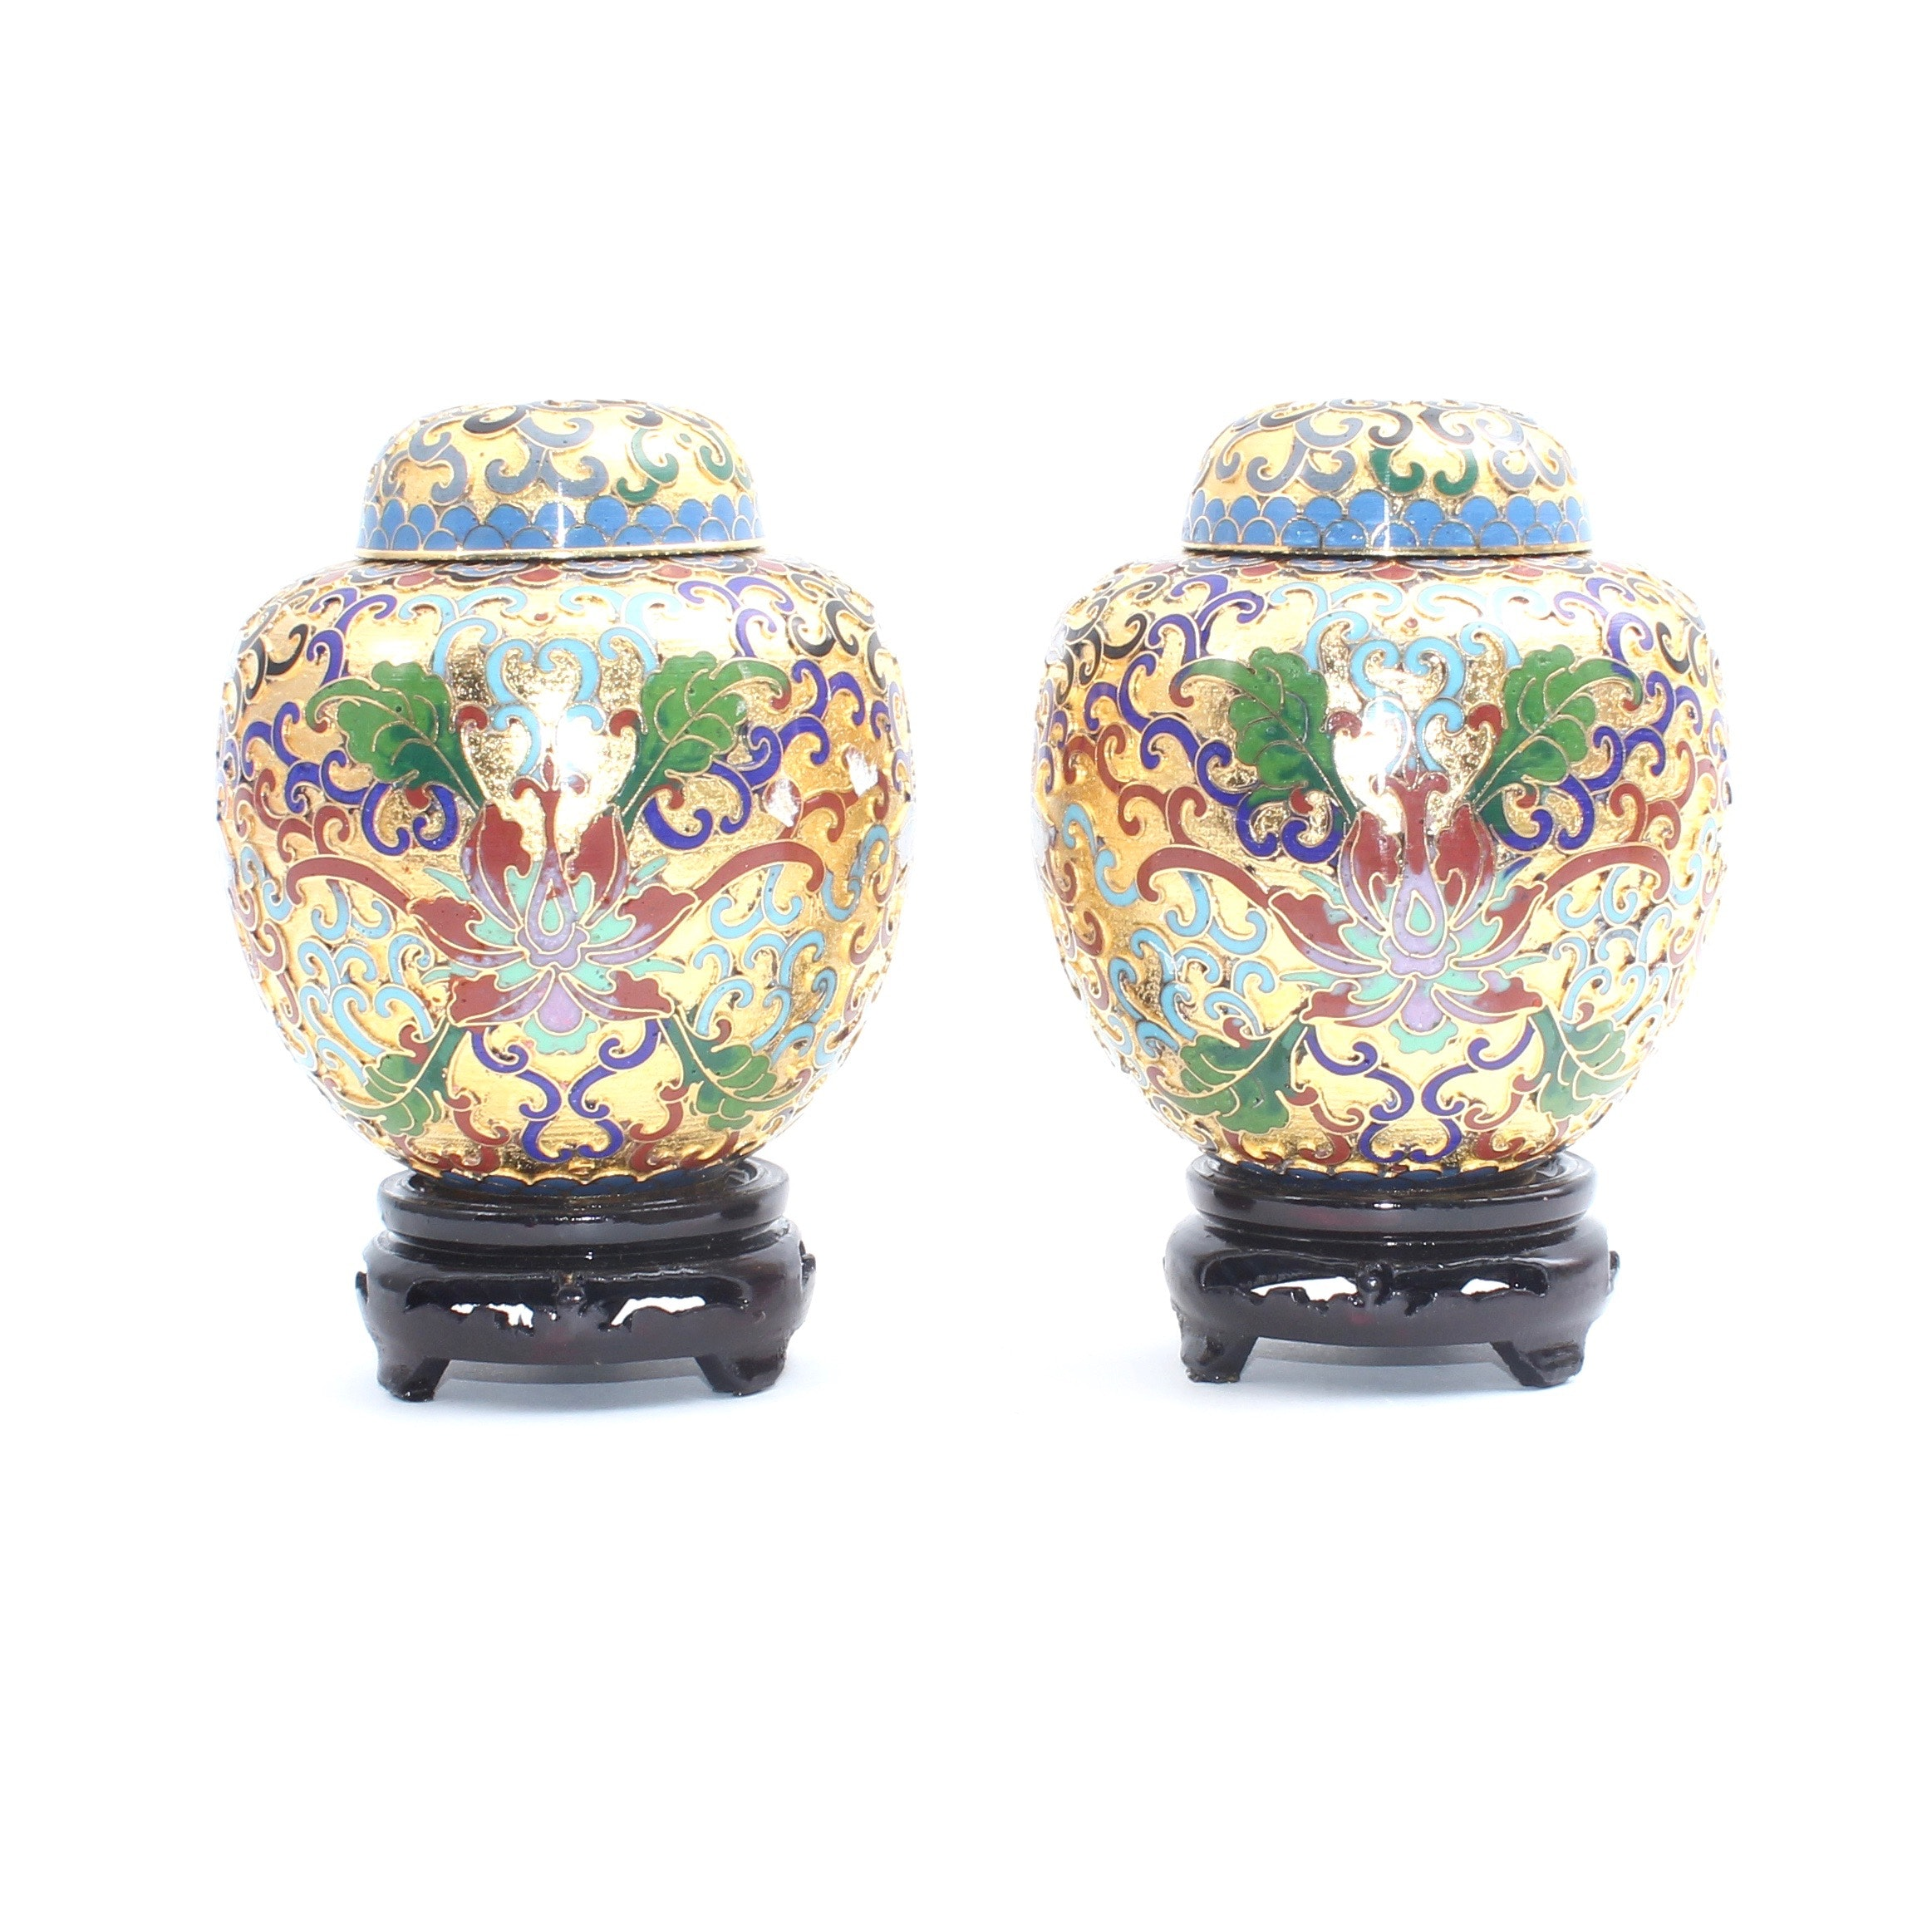 Pair of Chinese Cloisonné Ginger Jars